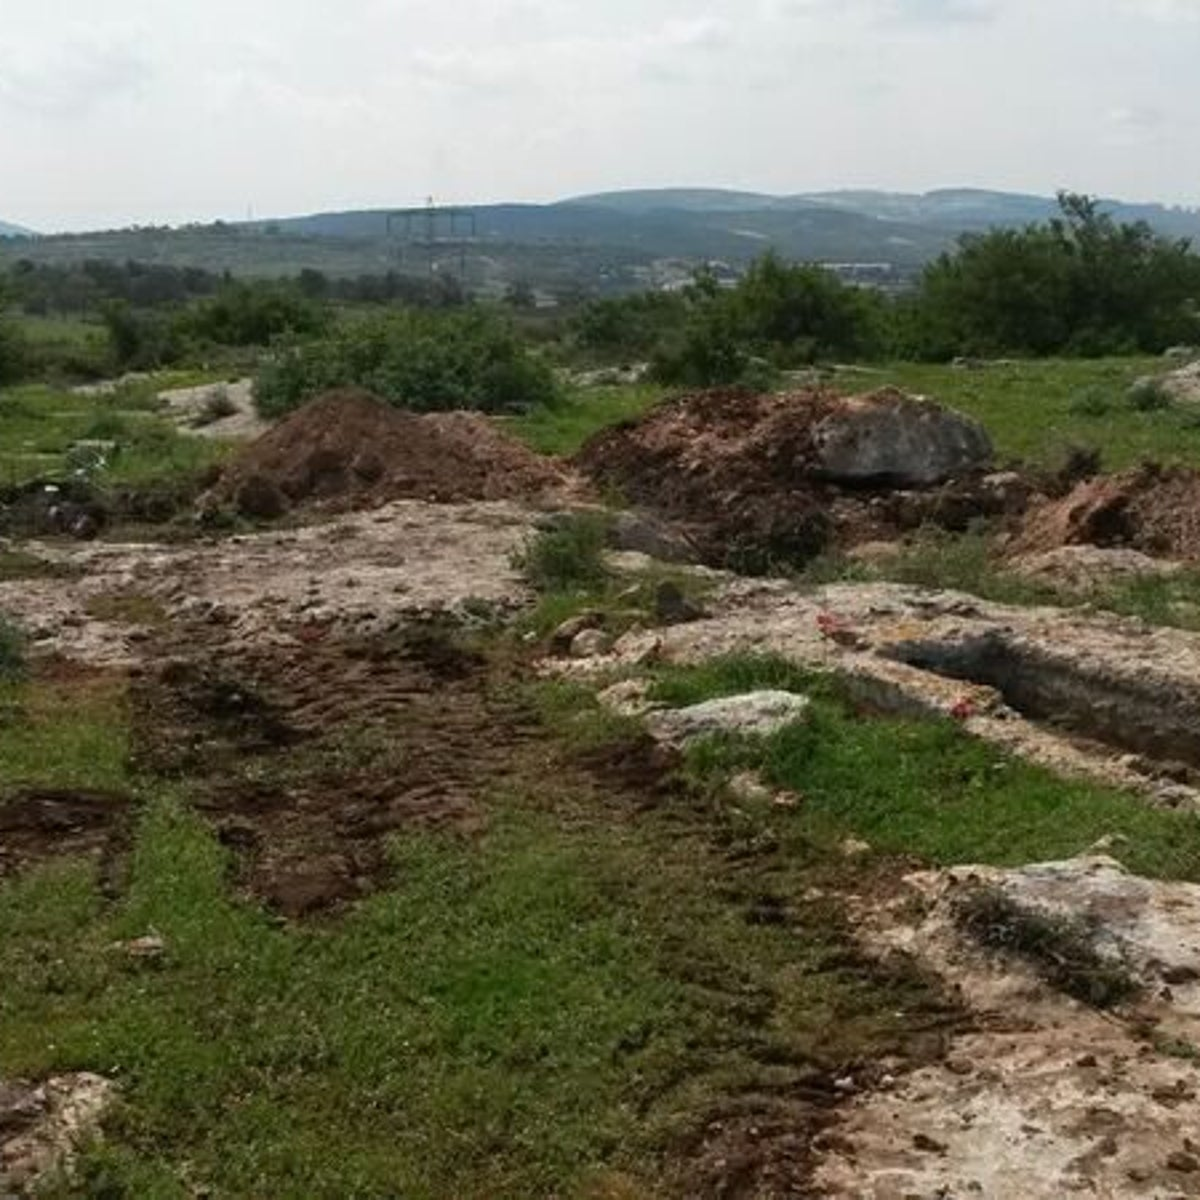 Bulldozer tracks and damage by the Mishkana tombs: We see a lovely green spring field in the Galilee marred by the damage done by tomb robbers